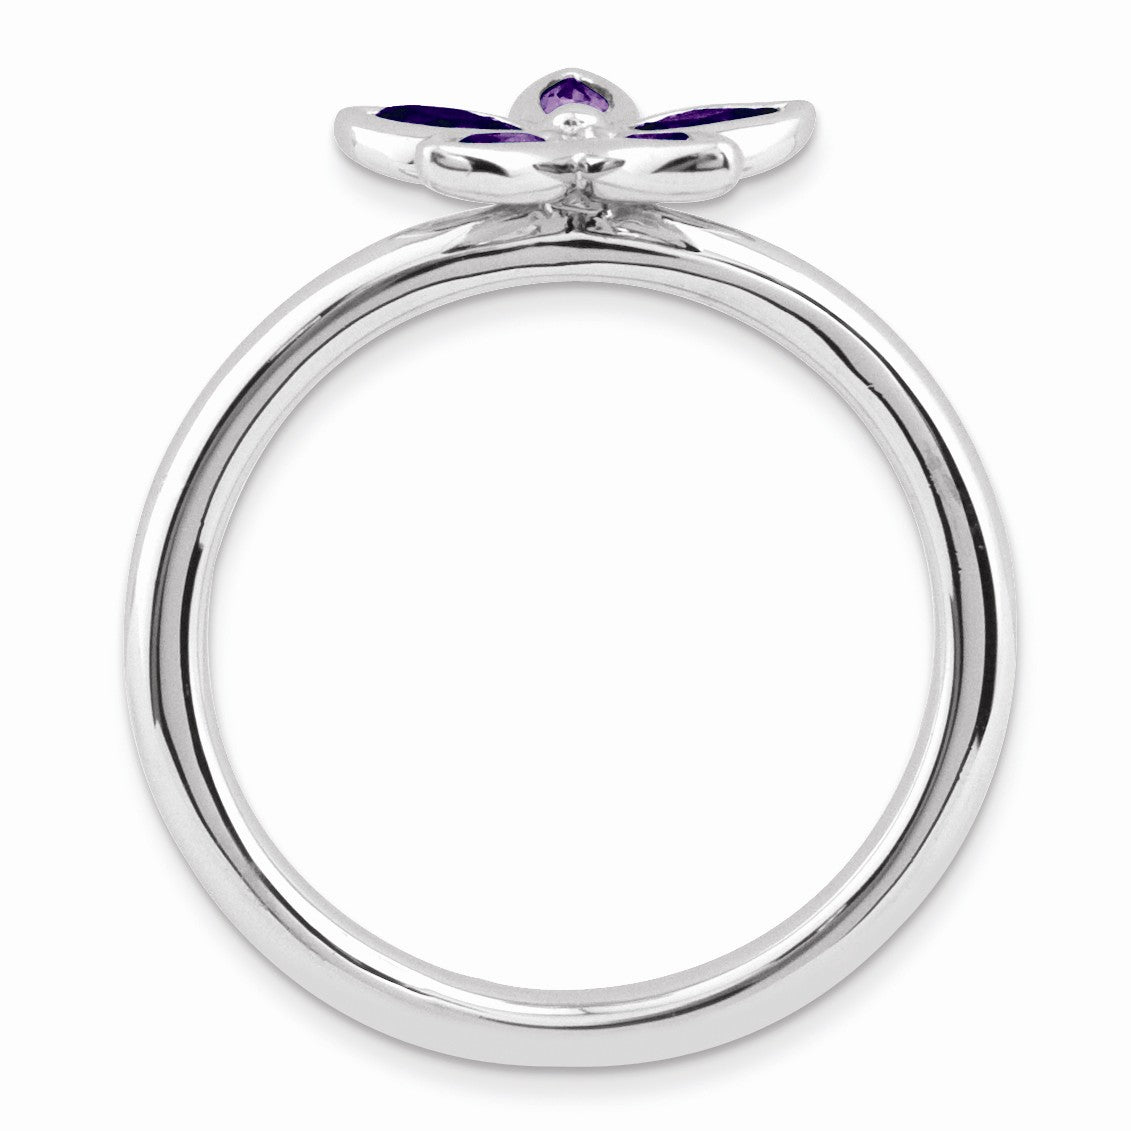 Alternate view of the Sterling Silver & Amethyst Stackable 5 Marquise Stone Flower Ring by The Black Bow Jewelry Co.